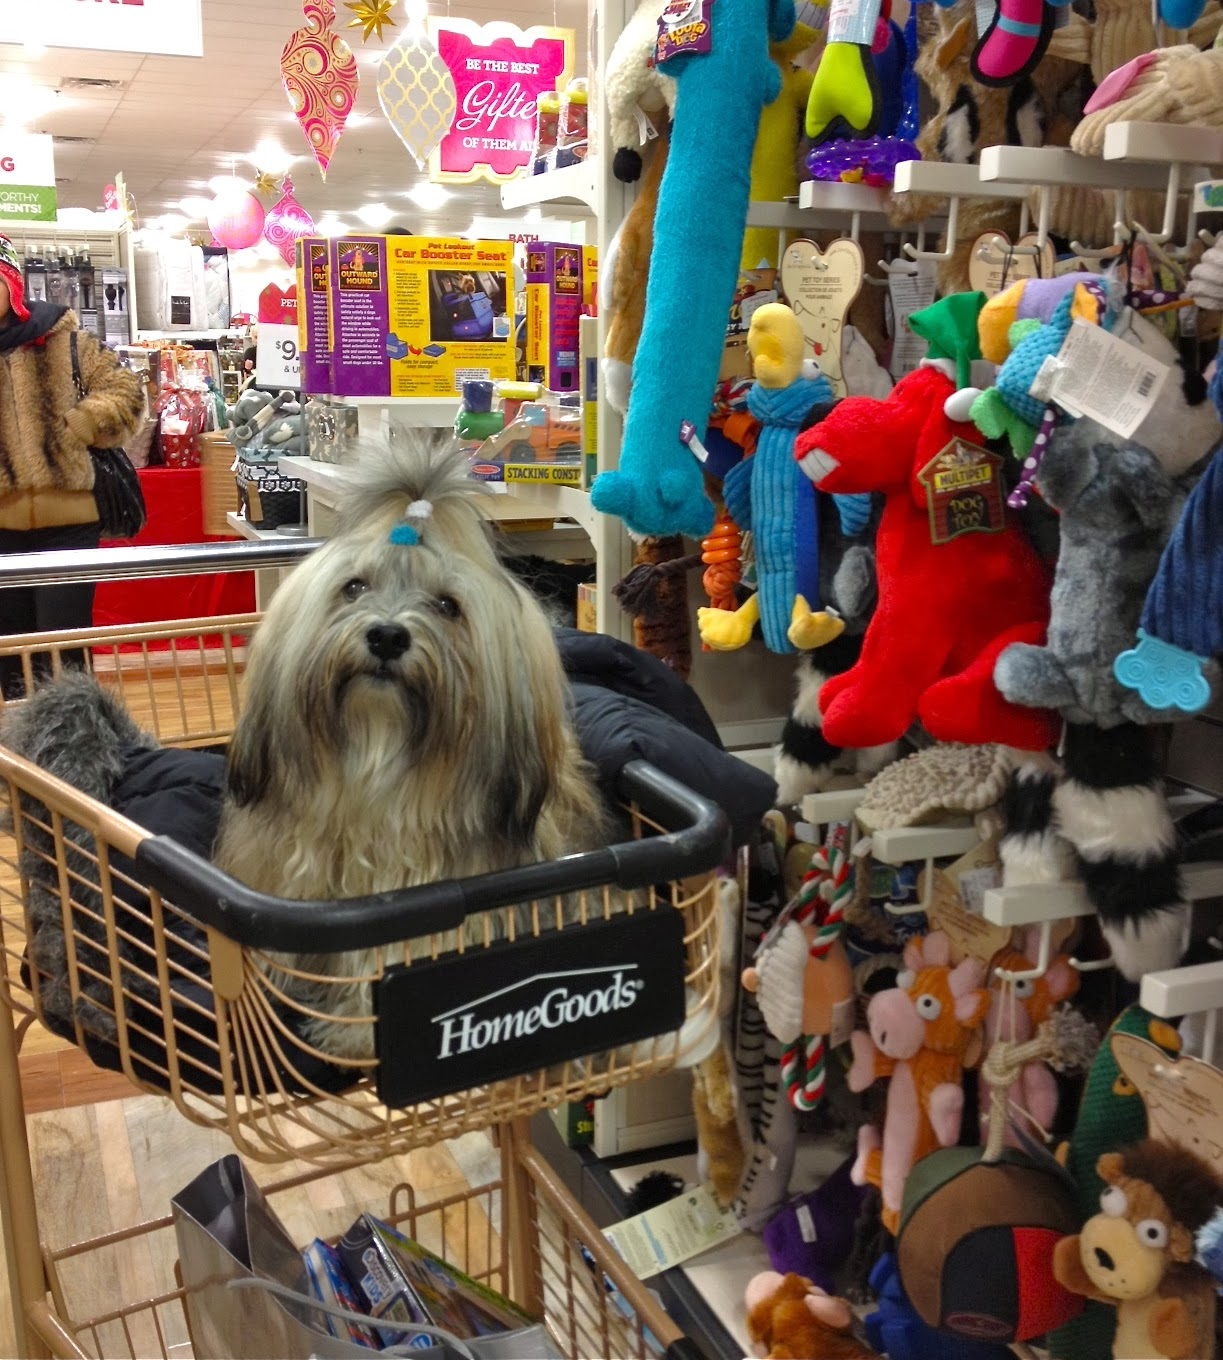 Dog-Friendly Shopping at Home Goods